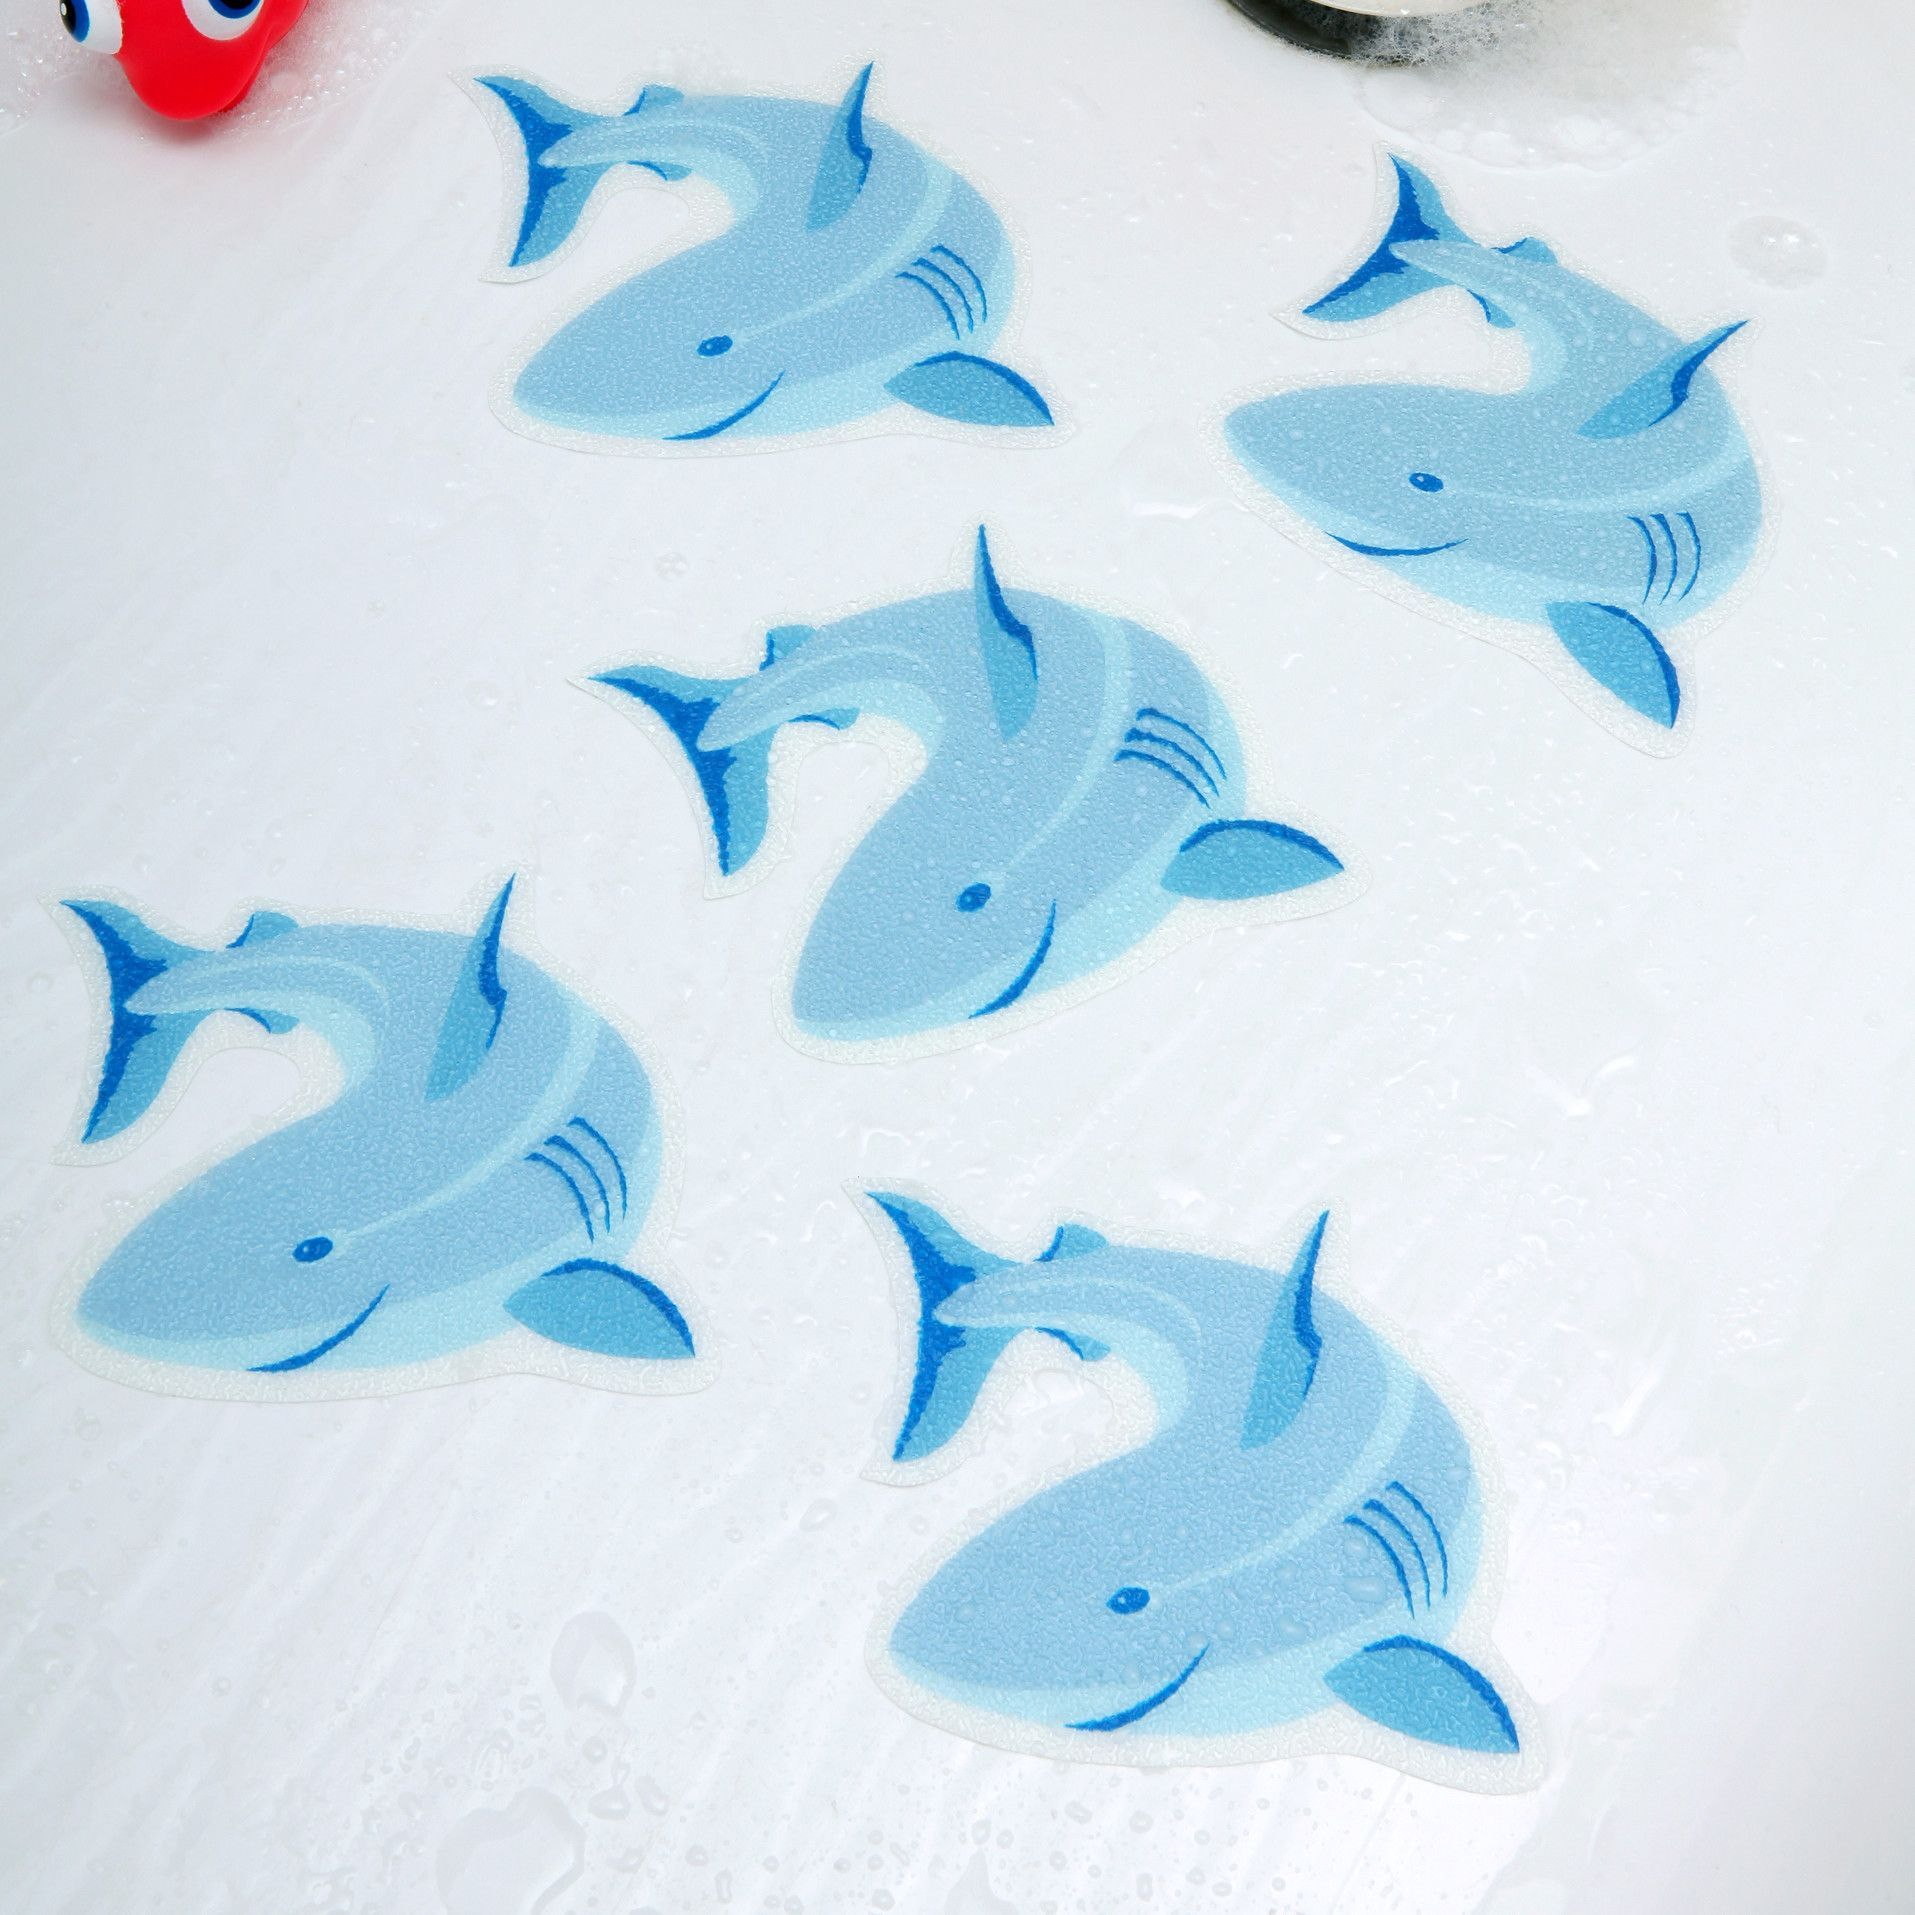 Shark Tub Tattoo Plastic Vinyl Non Slip Shower Mat In 2020 Shark Bathroom Bathroom Kids Non Slip Shower Mat